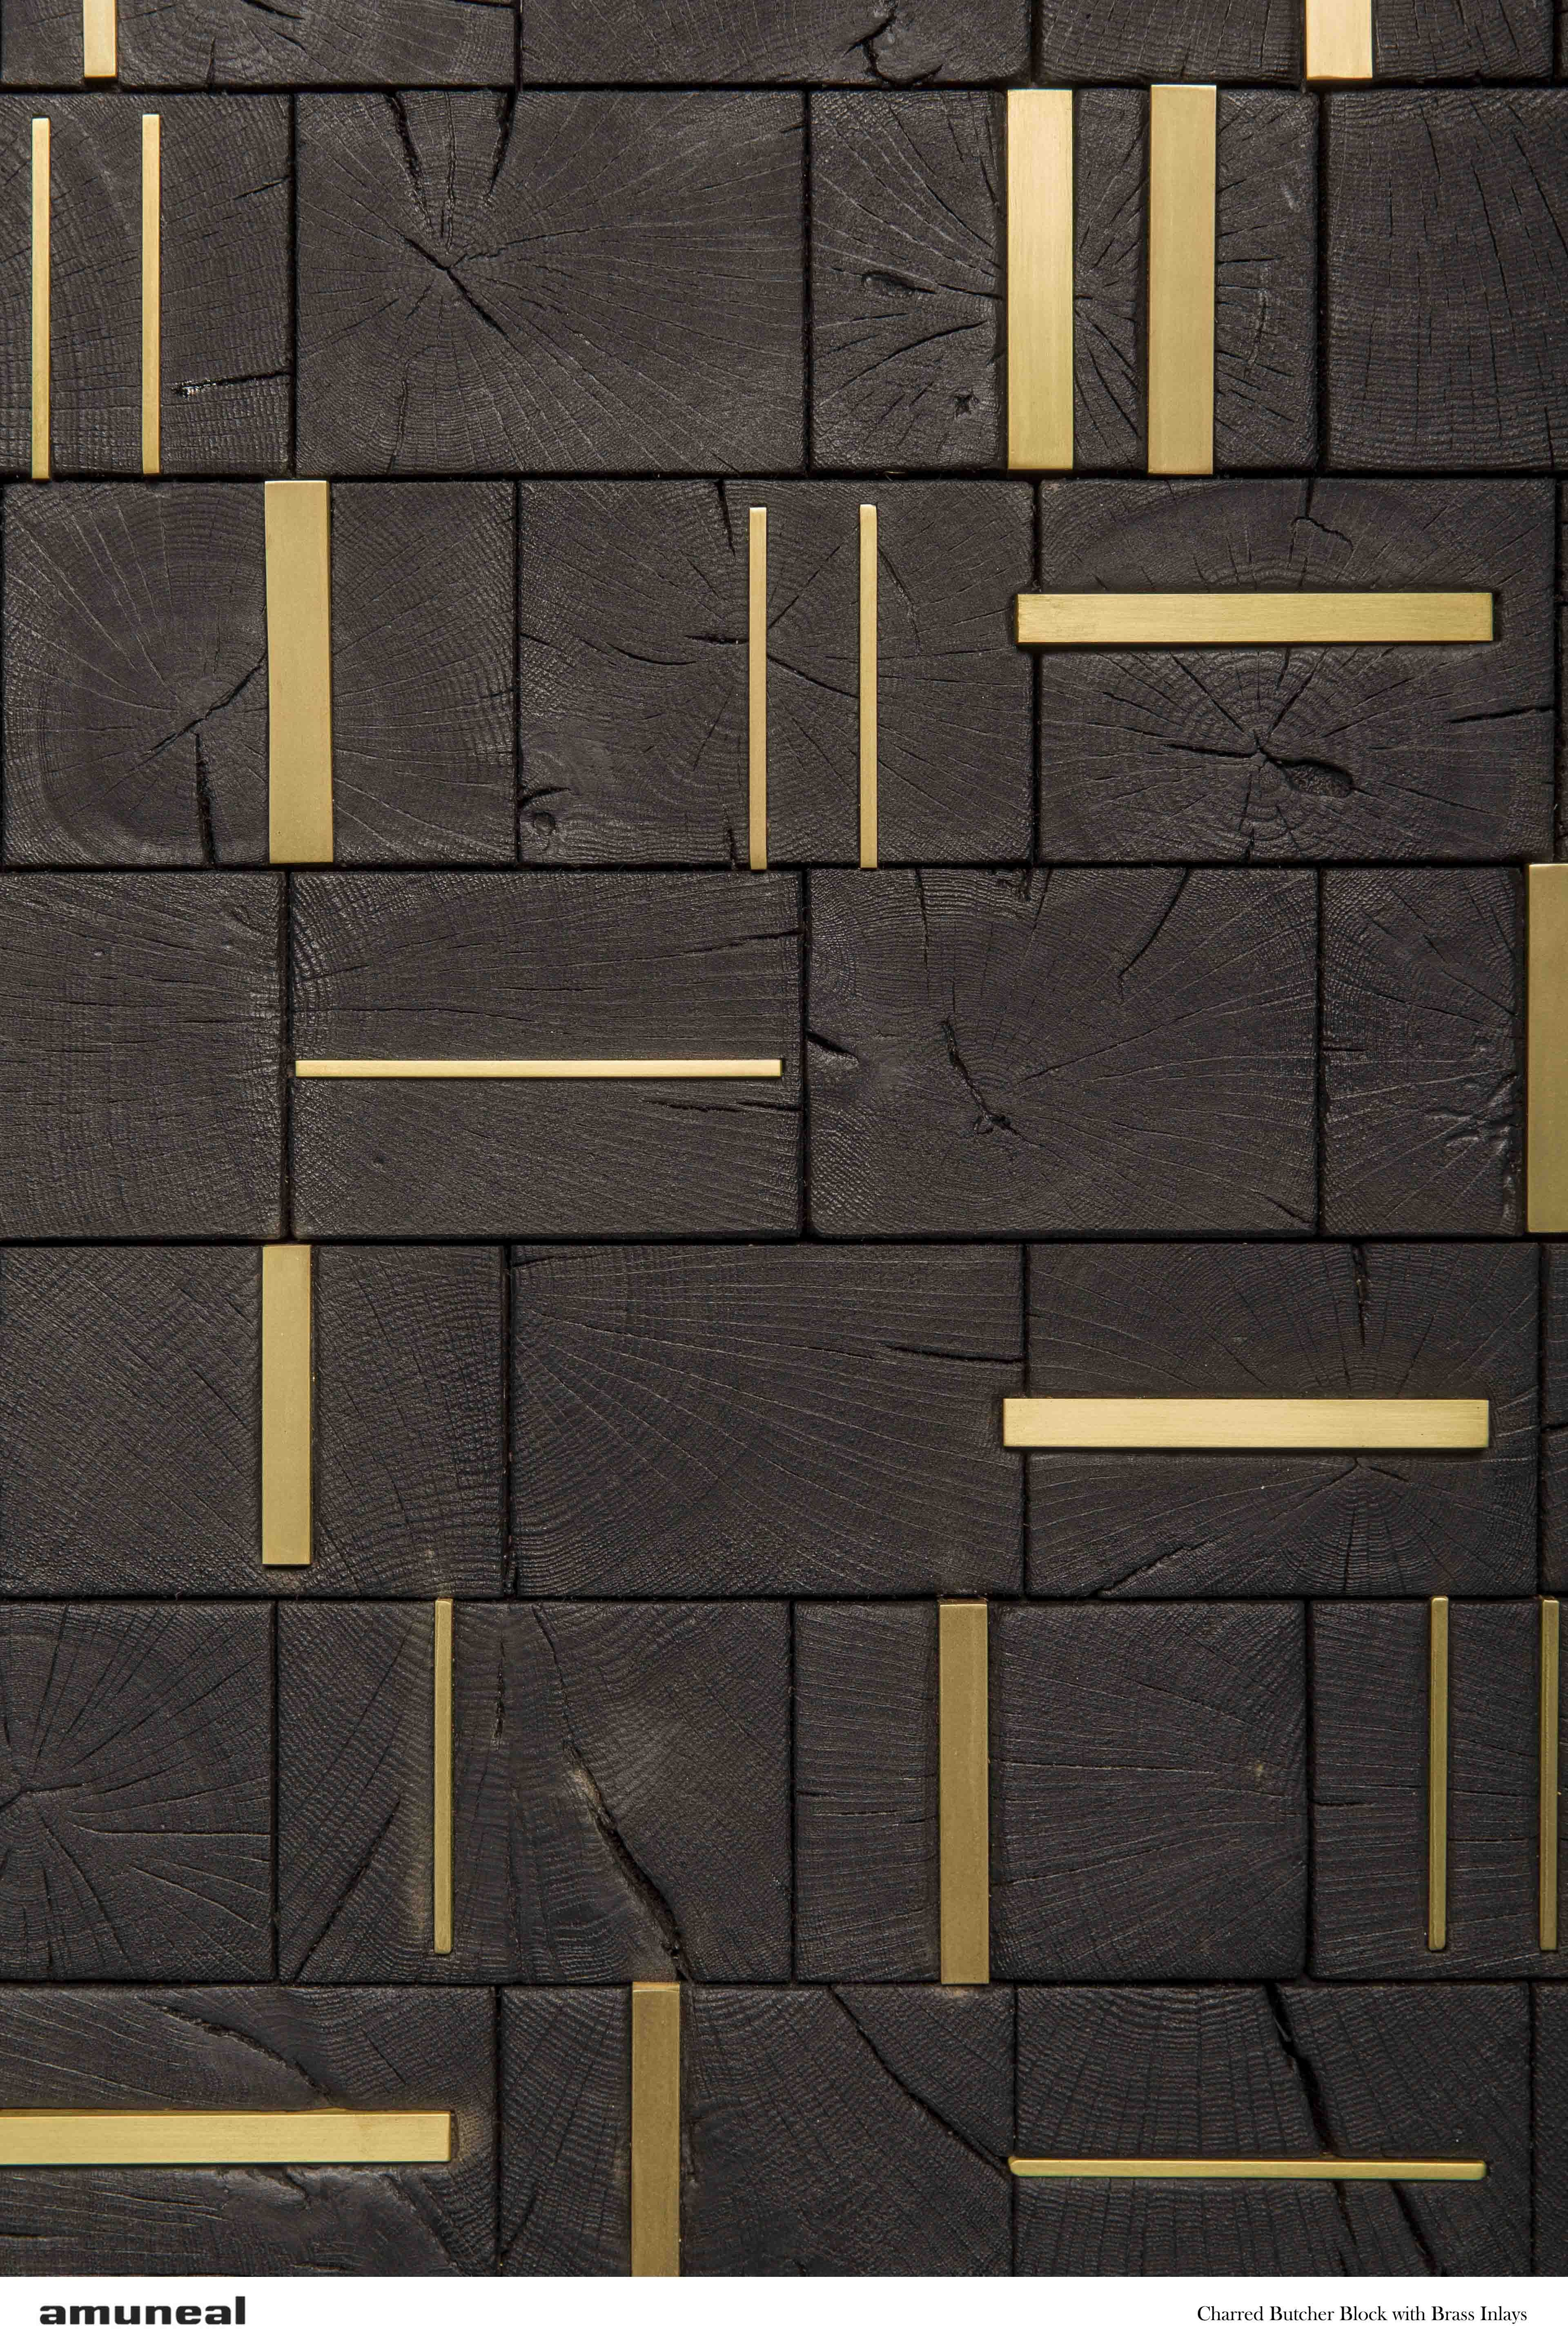 Samples of Textured Walls | LoveToKnow  |Interior Textured Wall Tile